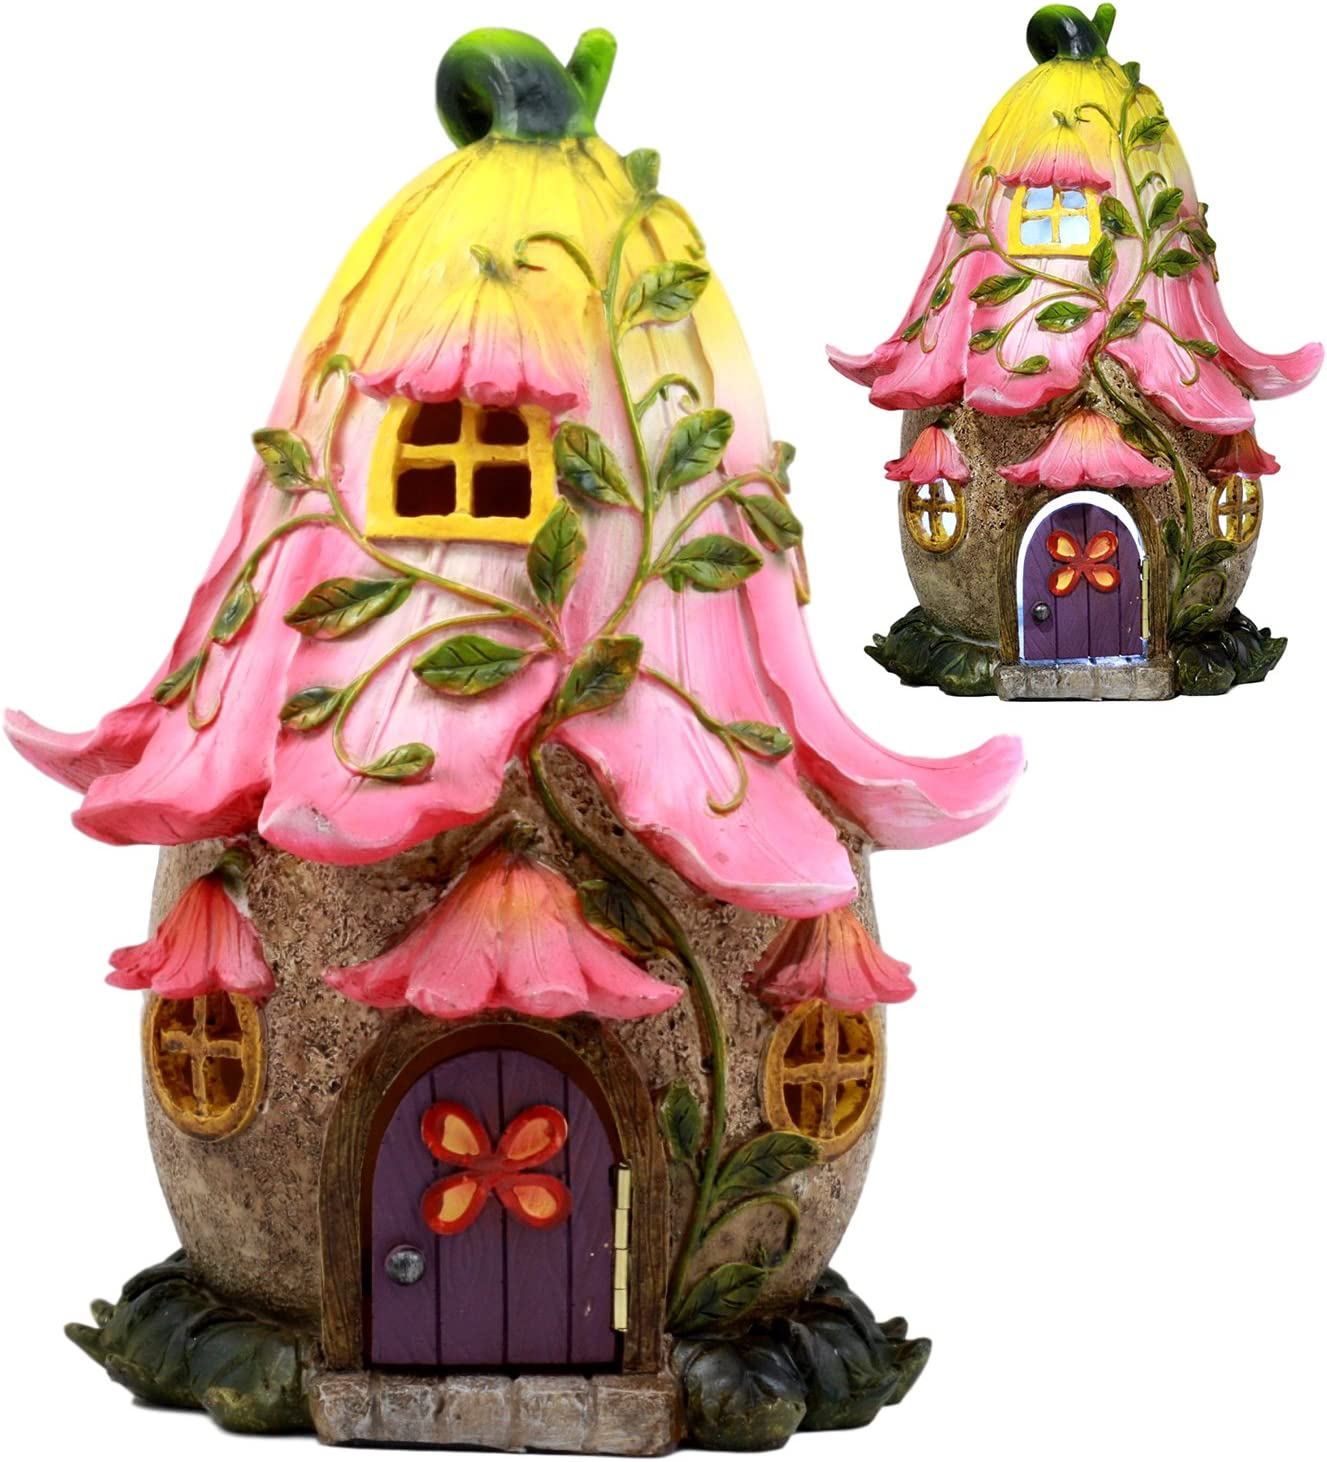 Ebros LED Light Up Miniature Enchanted Fairy Garden Trumpet Lily Cottage House with Moving Door Figurine